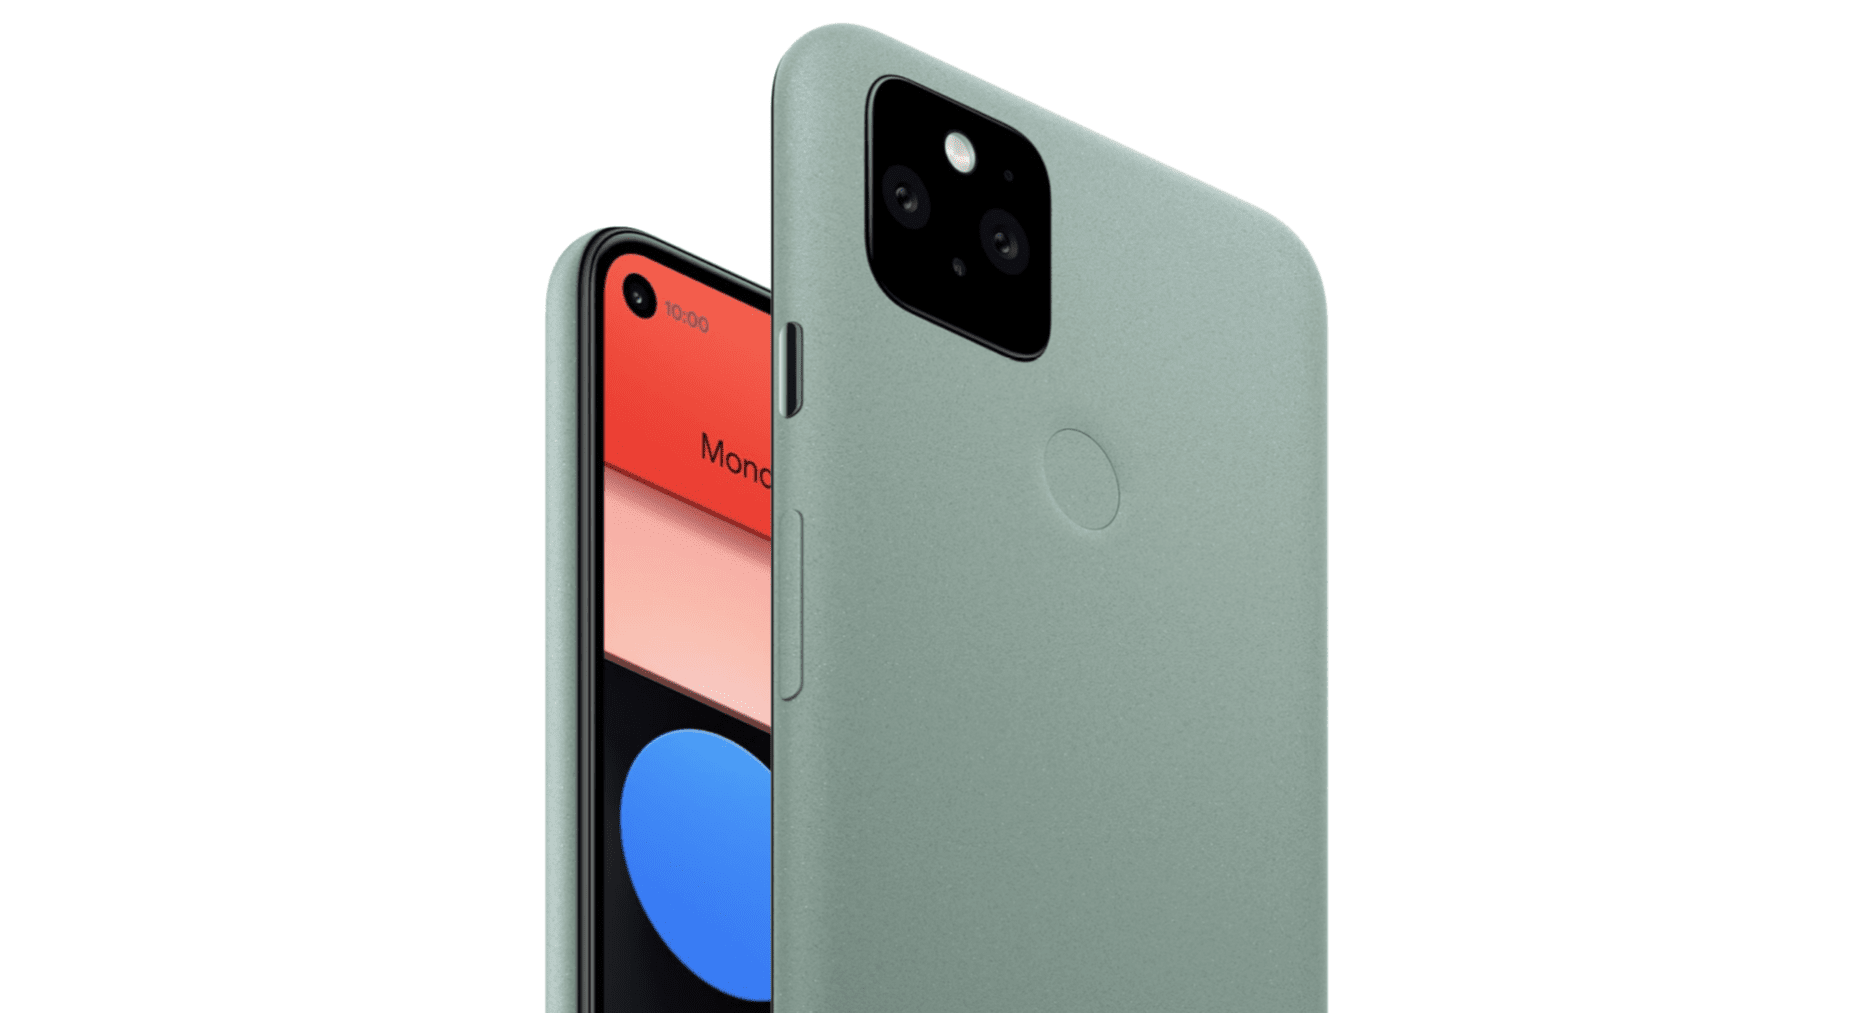 Google's Pixel 5 costs $699 and packs major camera improvements